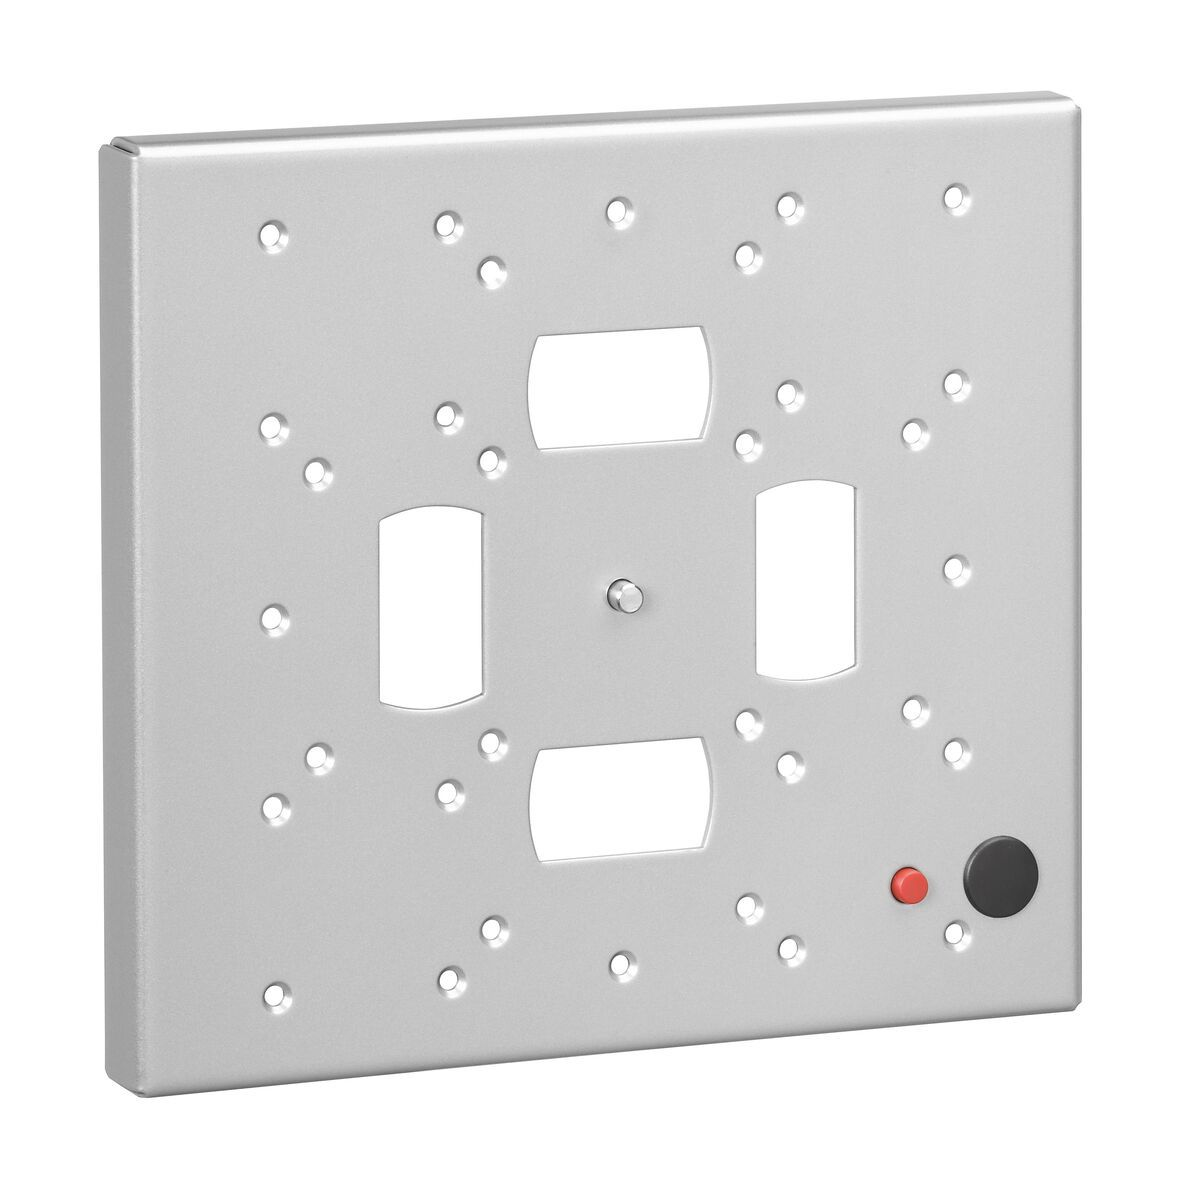 Vogel's FAU 3125 Interface écran argent - Product